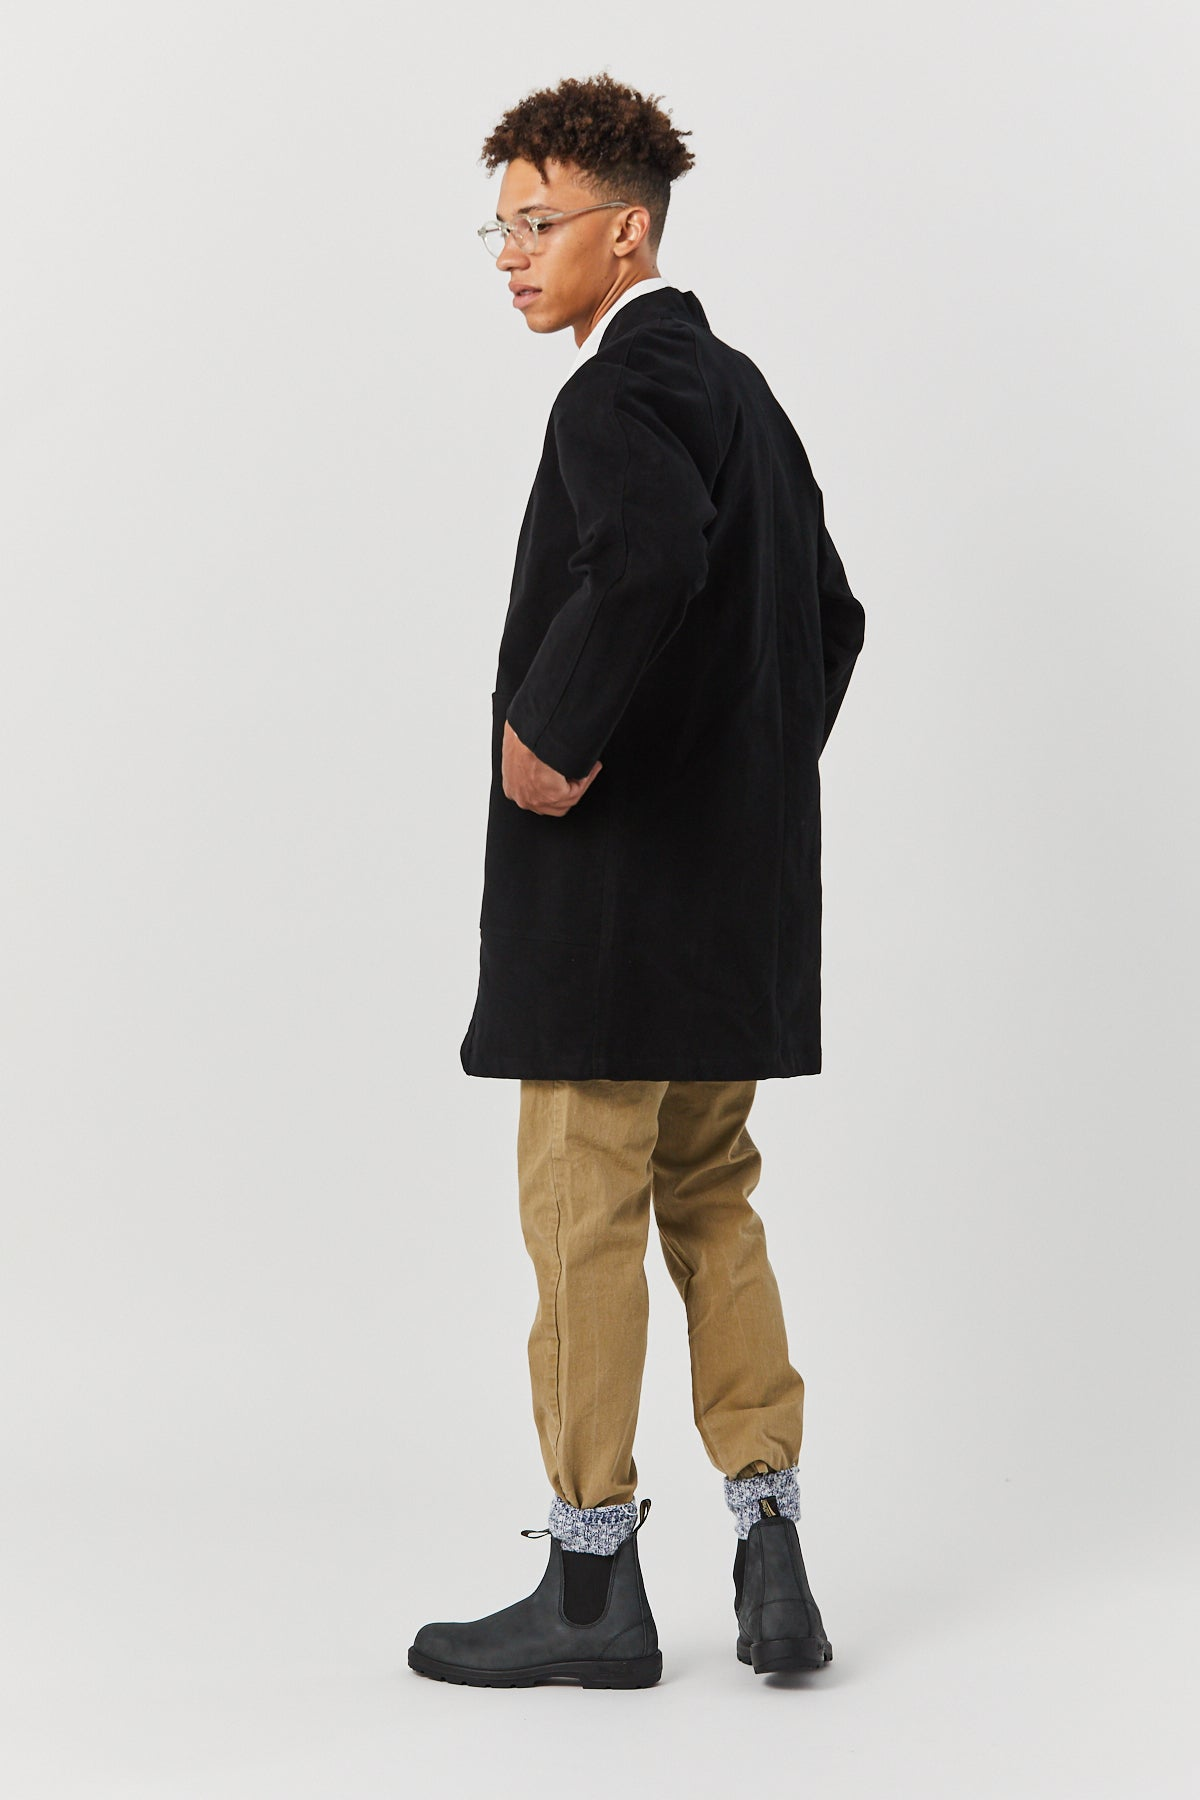 WEST VILLAGE ROBE IN BLACK - Fortune Goods